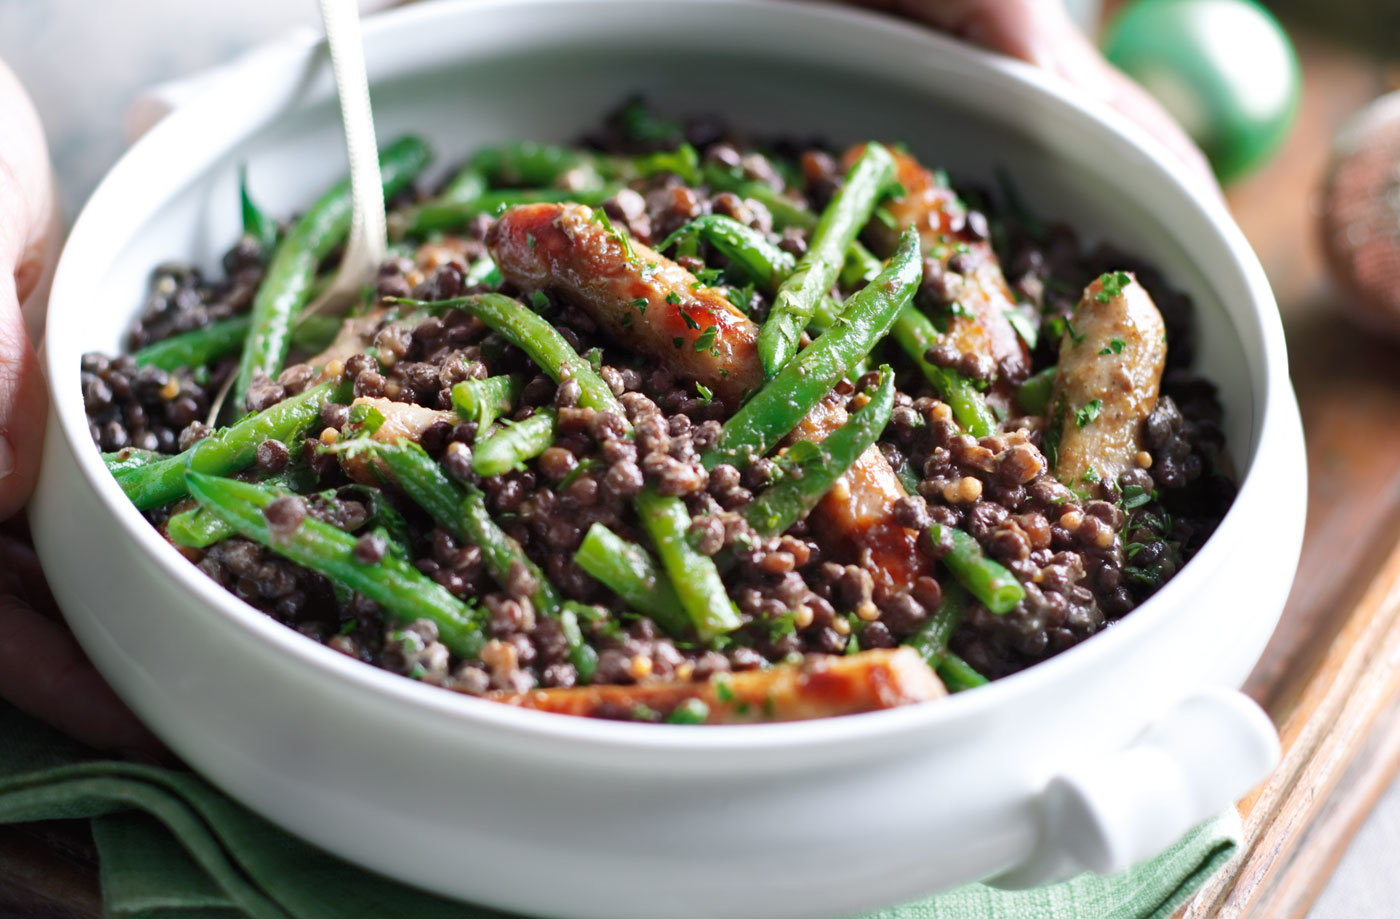 Puy lentils with chipolatas, green beans and sweet mustard dressing recipe